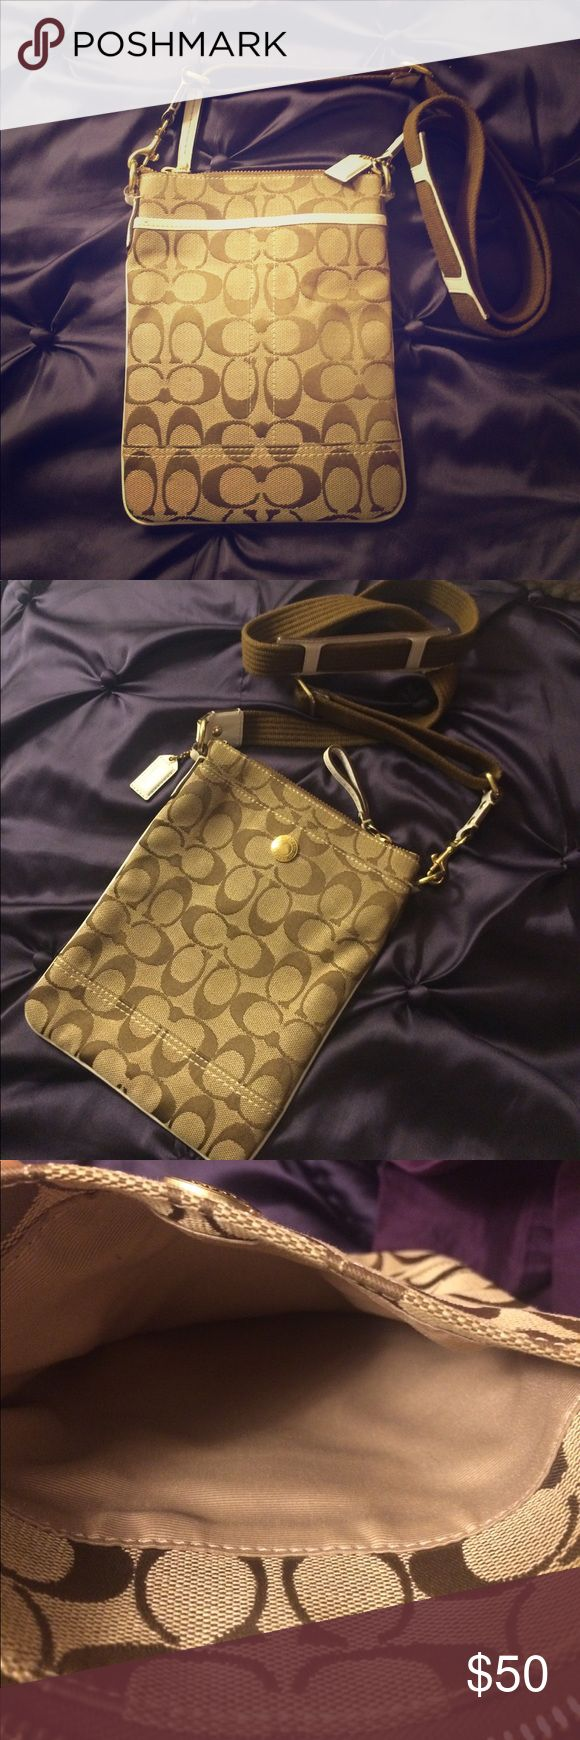 Coach Crossbody Purse Beautiful and very clean (like new) crossbody bag with Coach logo. Gold hardware with white leather accents. Perfect for festivals. Coach Bags Crossbody Bags